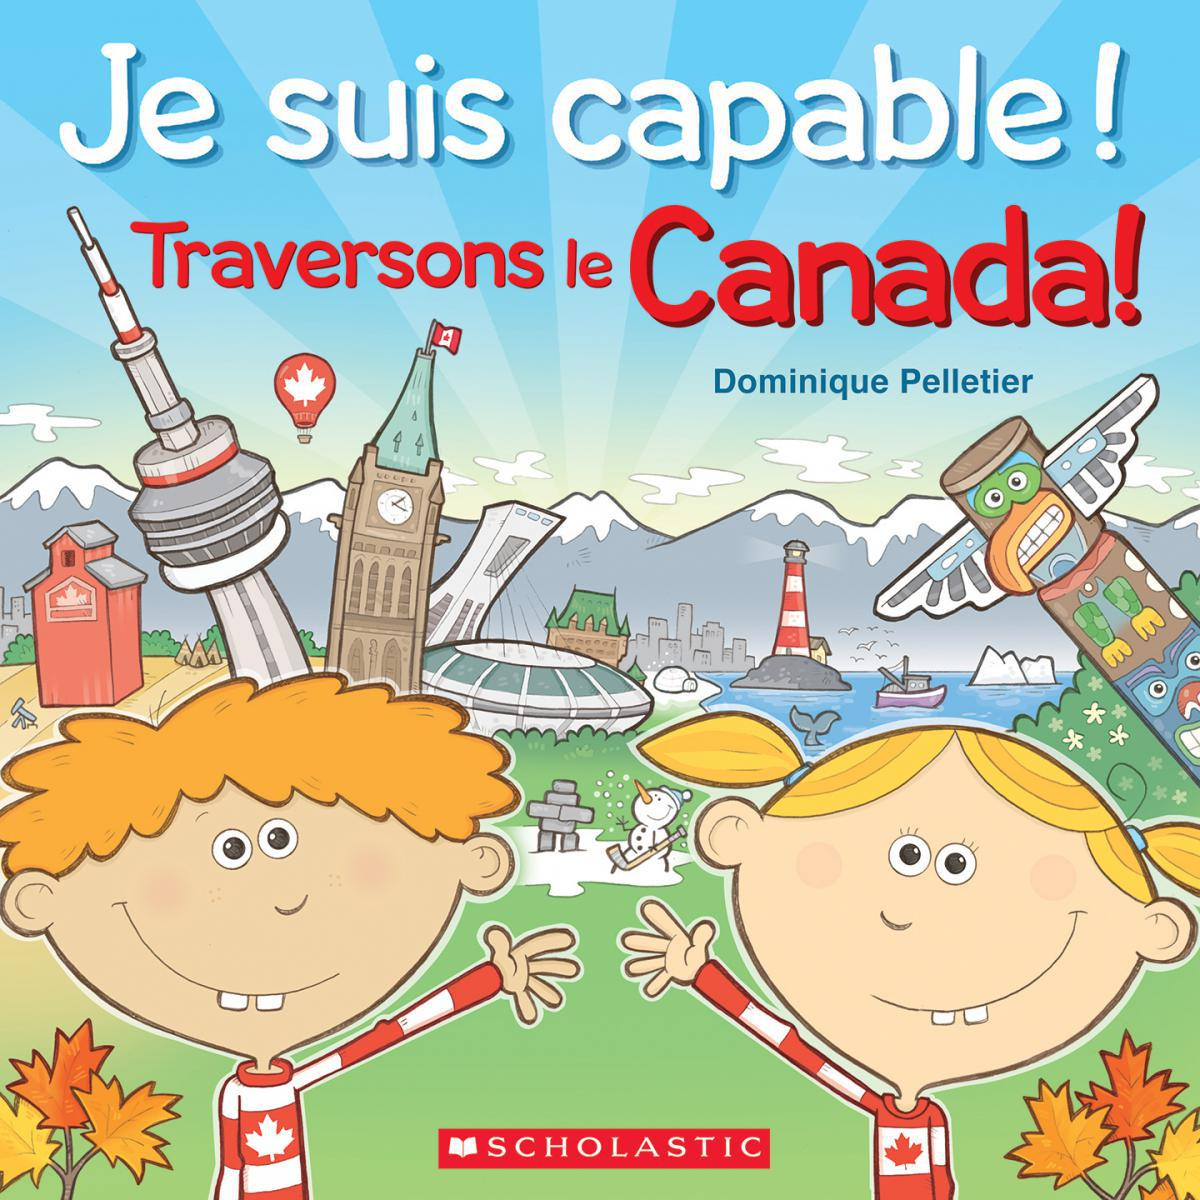 Je suis capable! Traversons le Canada!